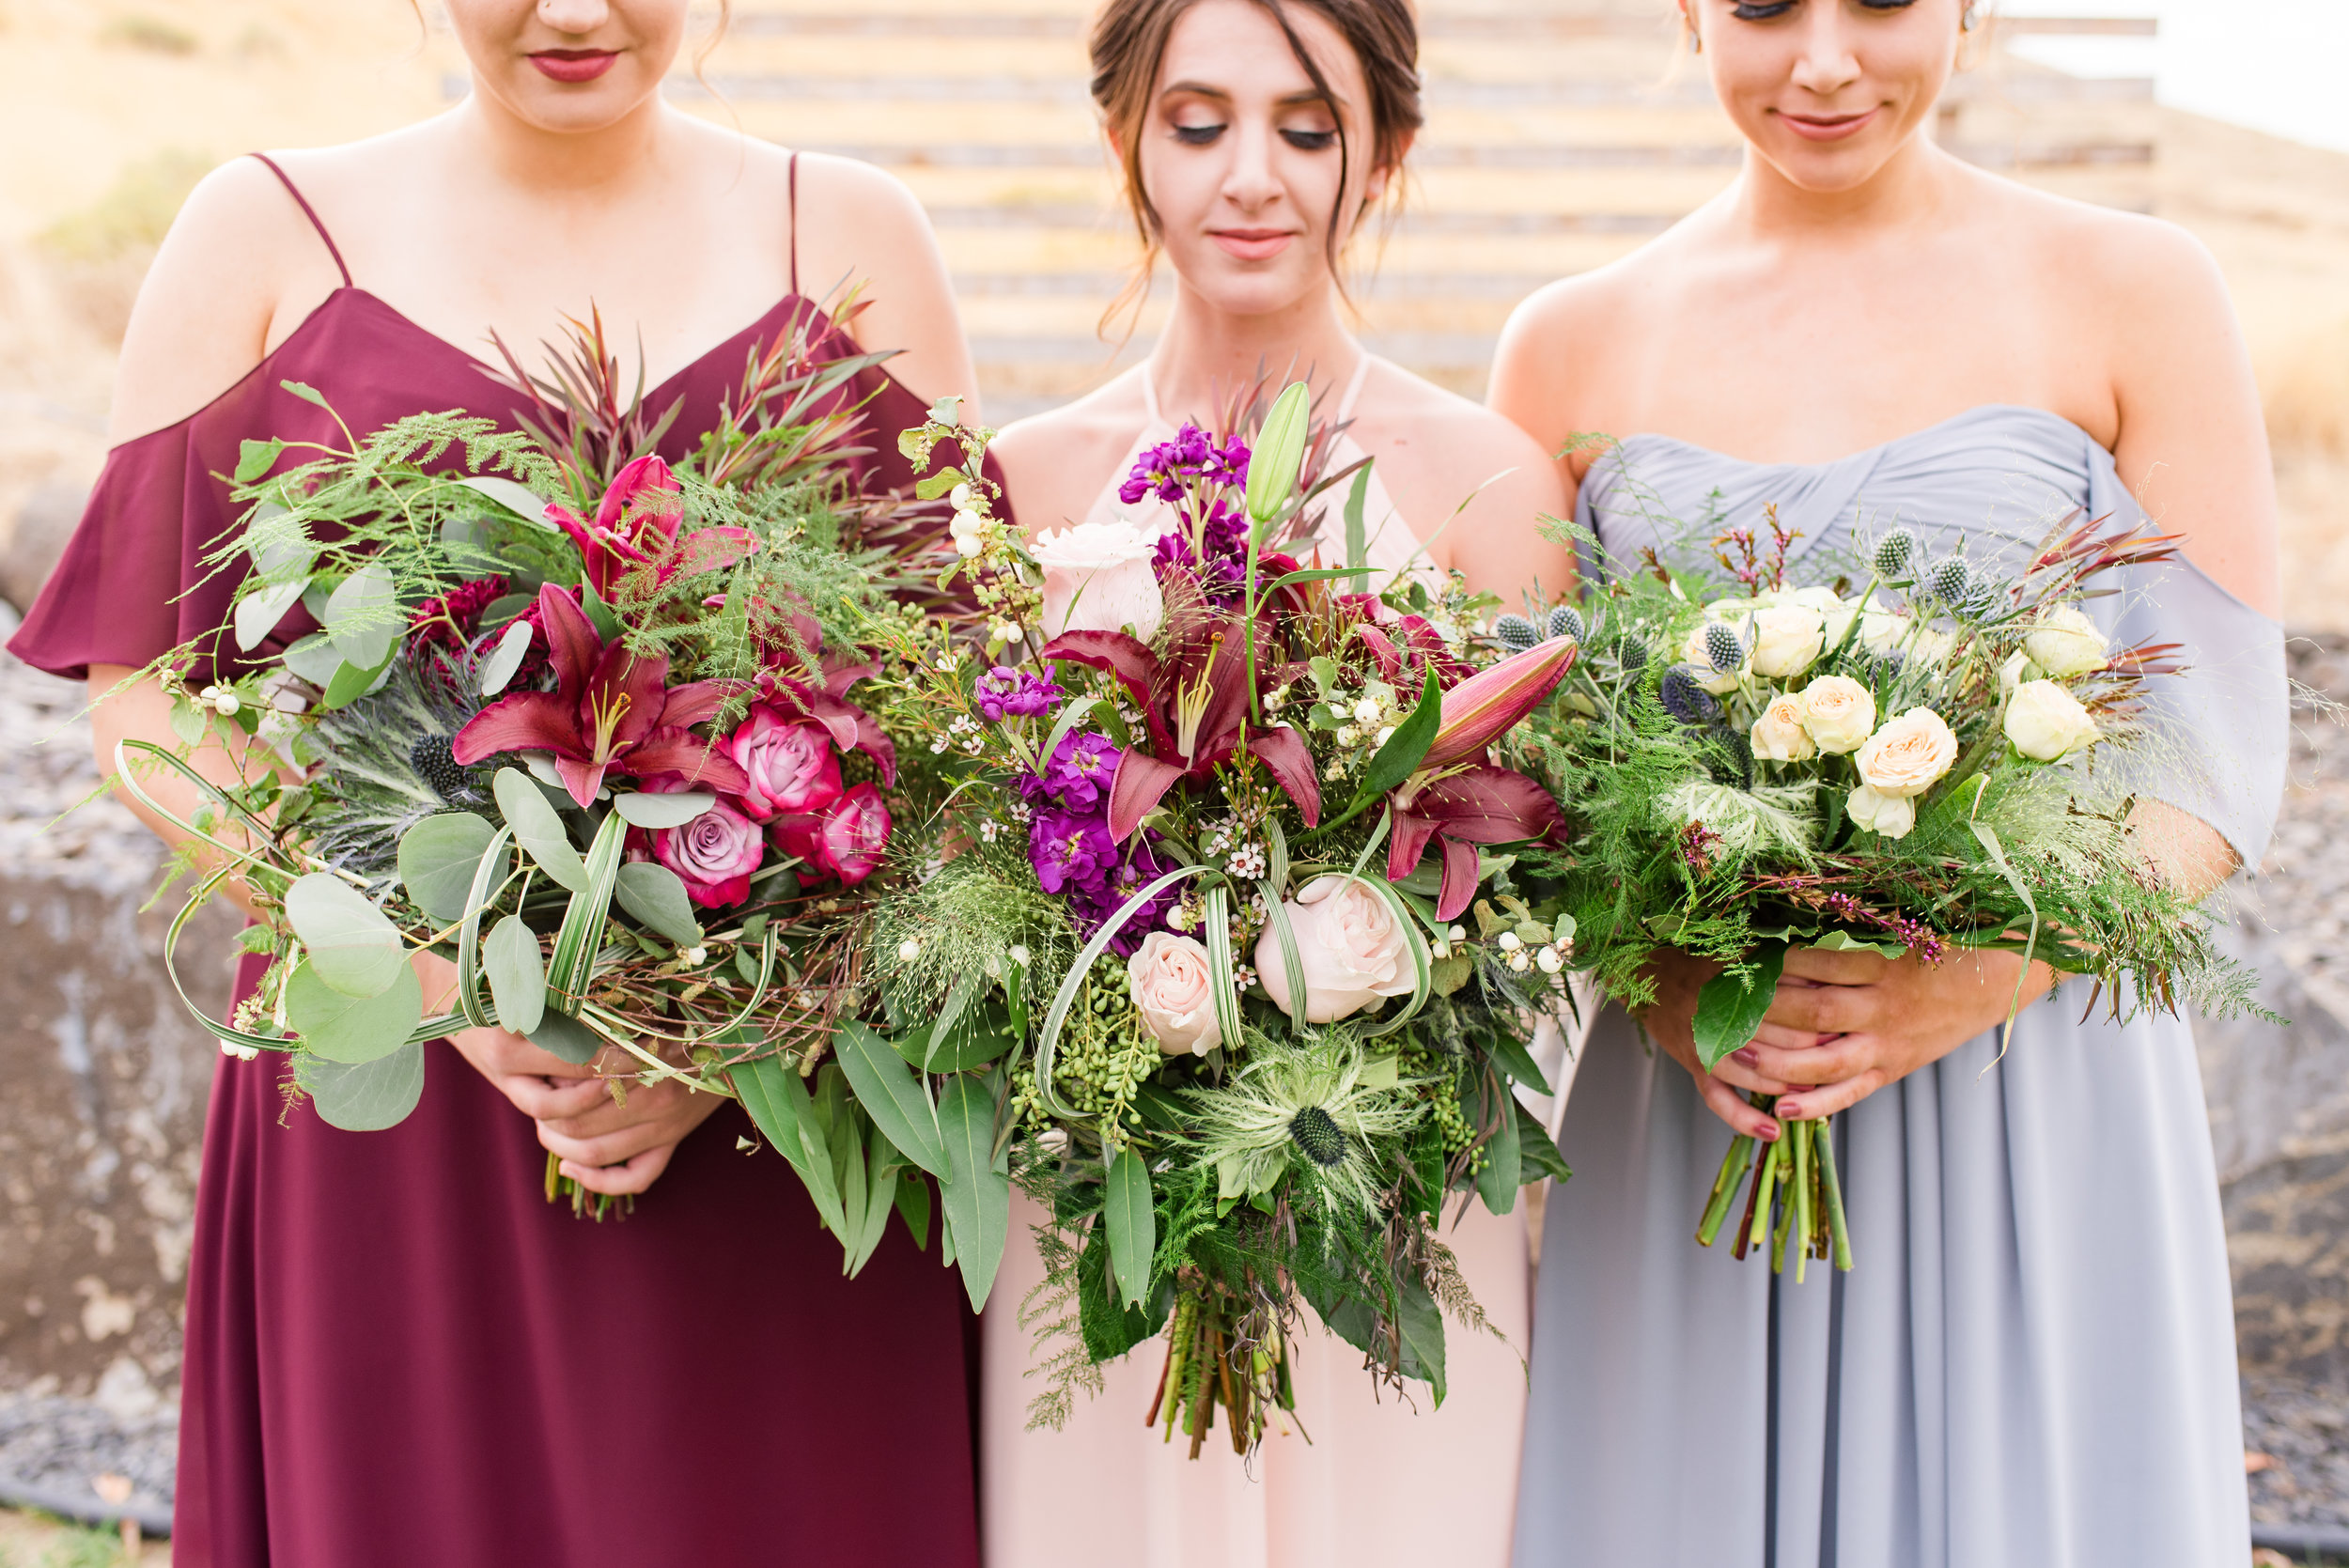 Tri Cities Washington Wedding Photographer - Morgan Tayler Photo & Design